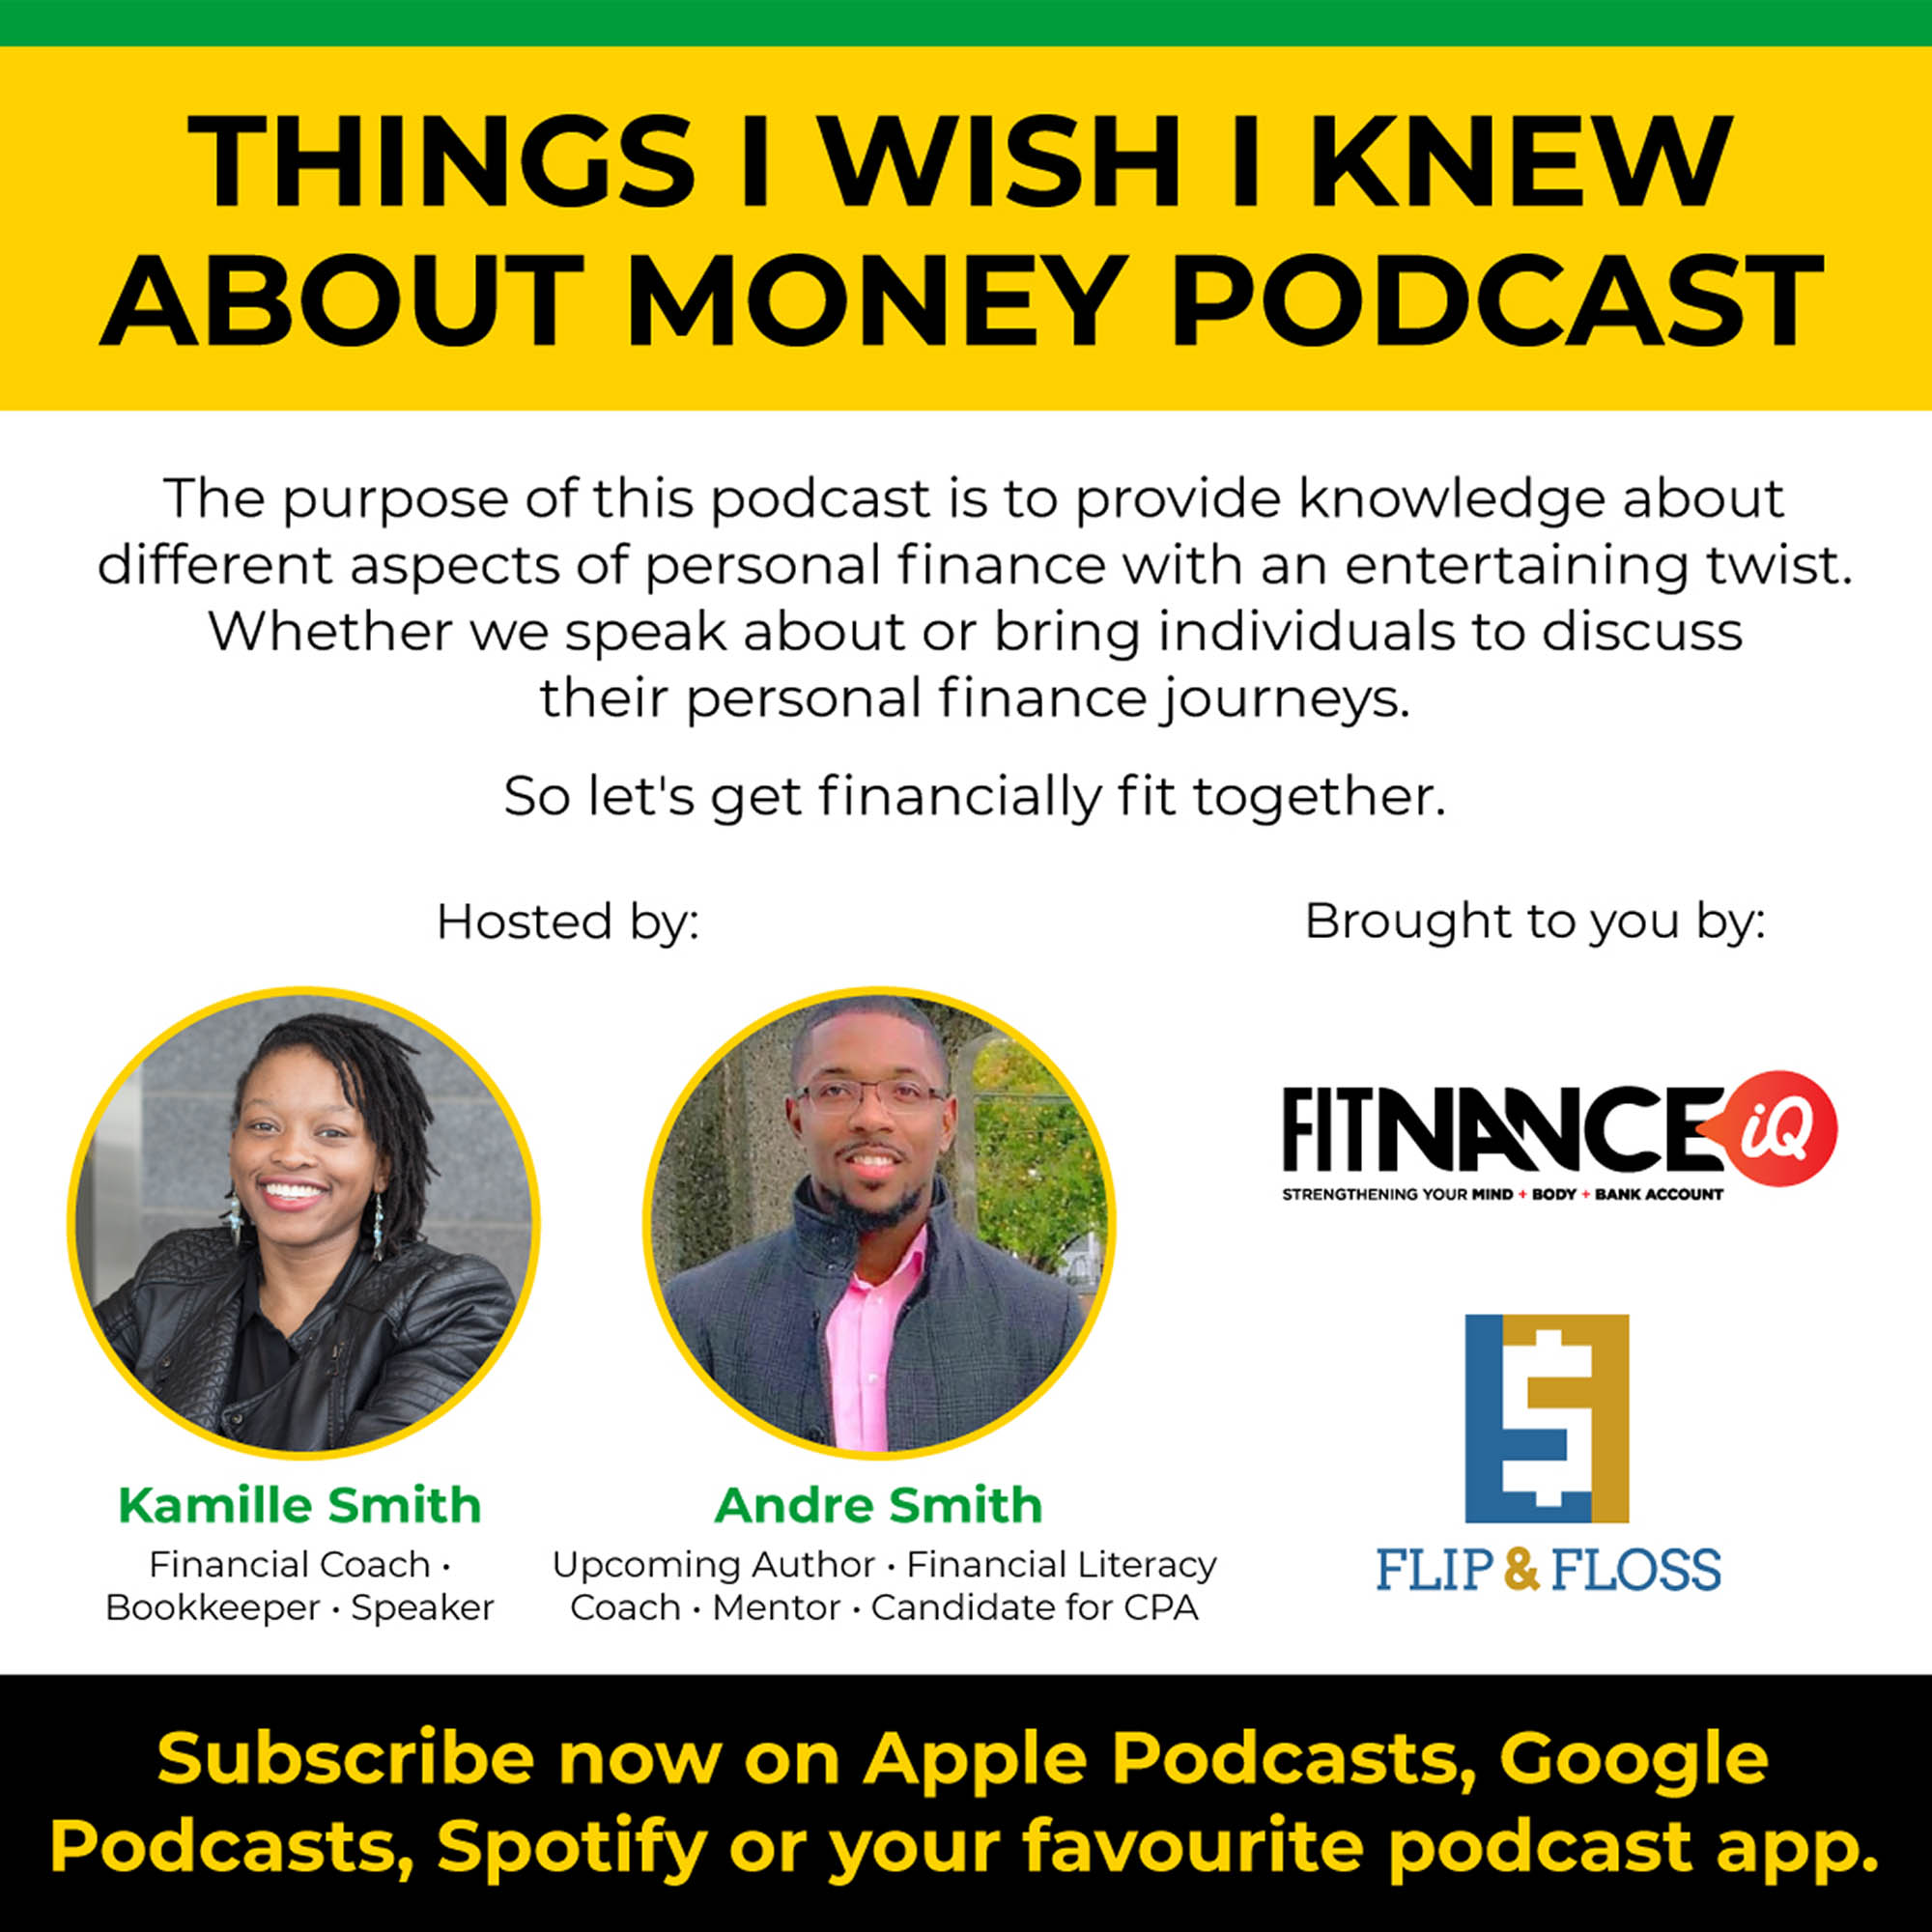 Things I Wish I Knew About Money Podcast - Podcast Cover Art - Podcasts